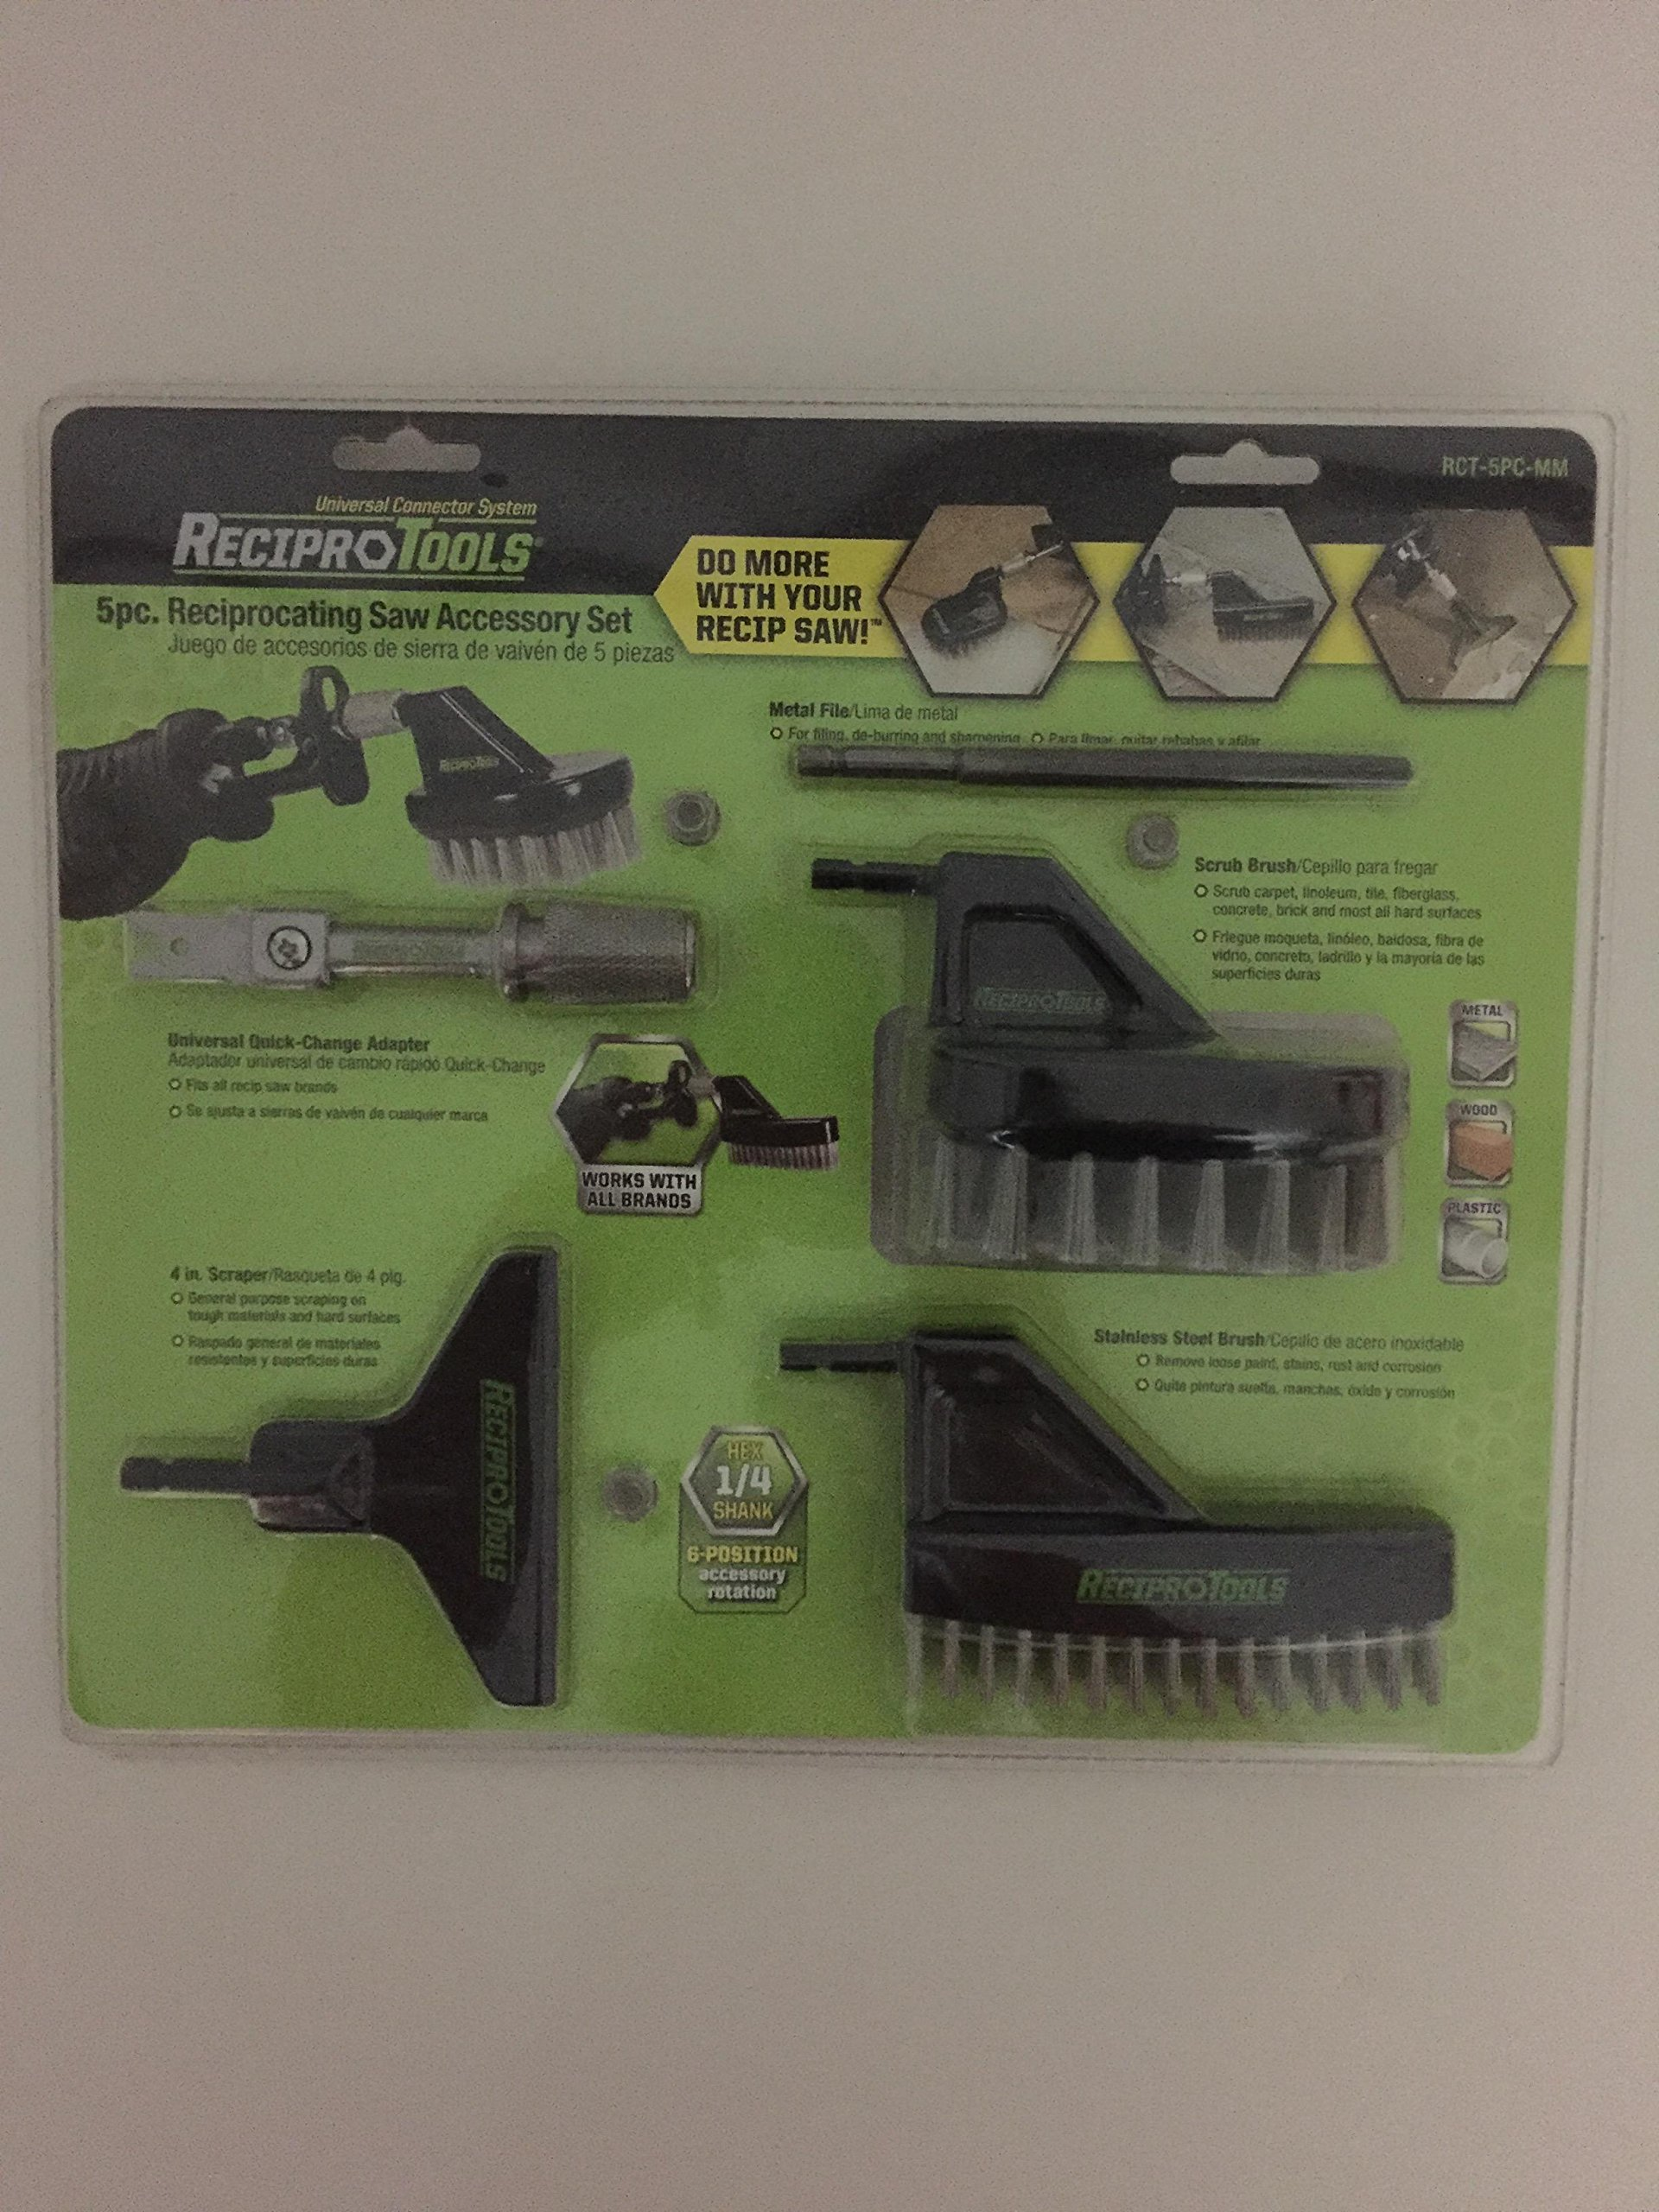 5 pc. Reciprocating Saw Accessory Set by Reciprotools